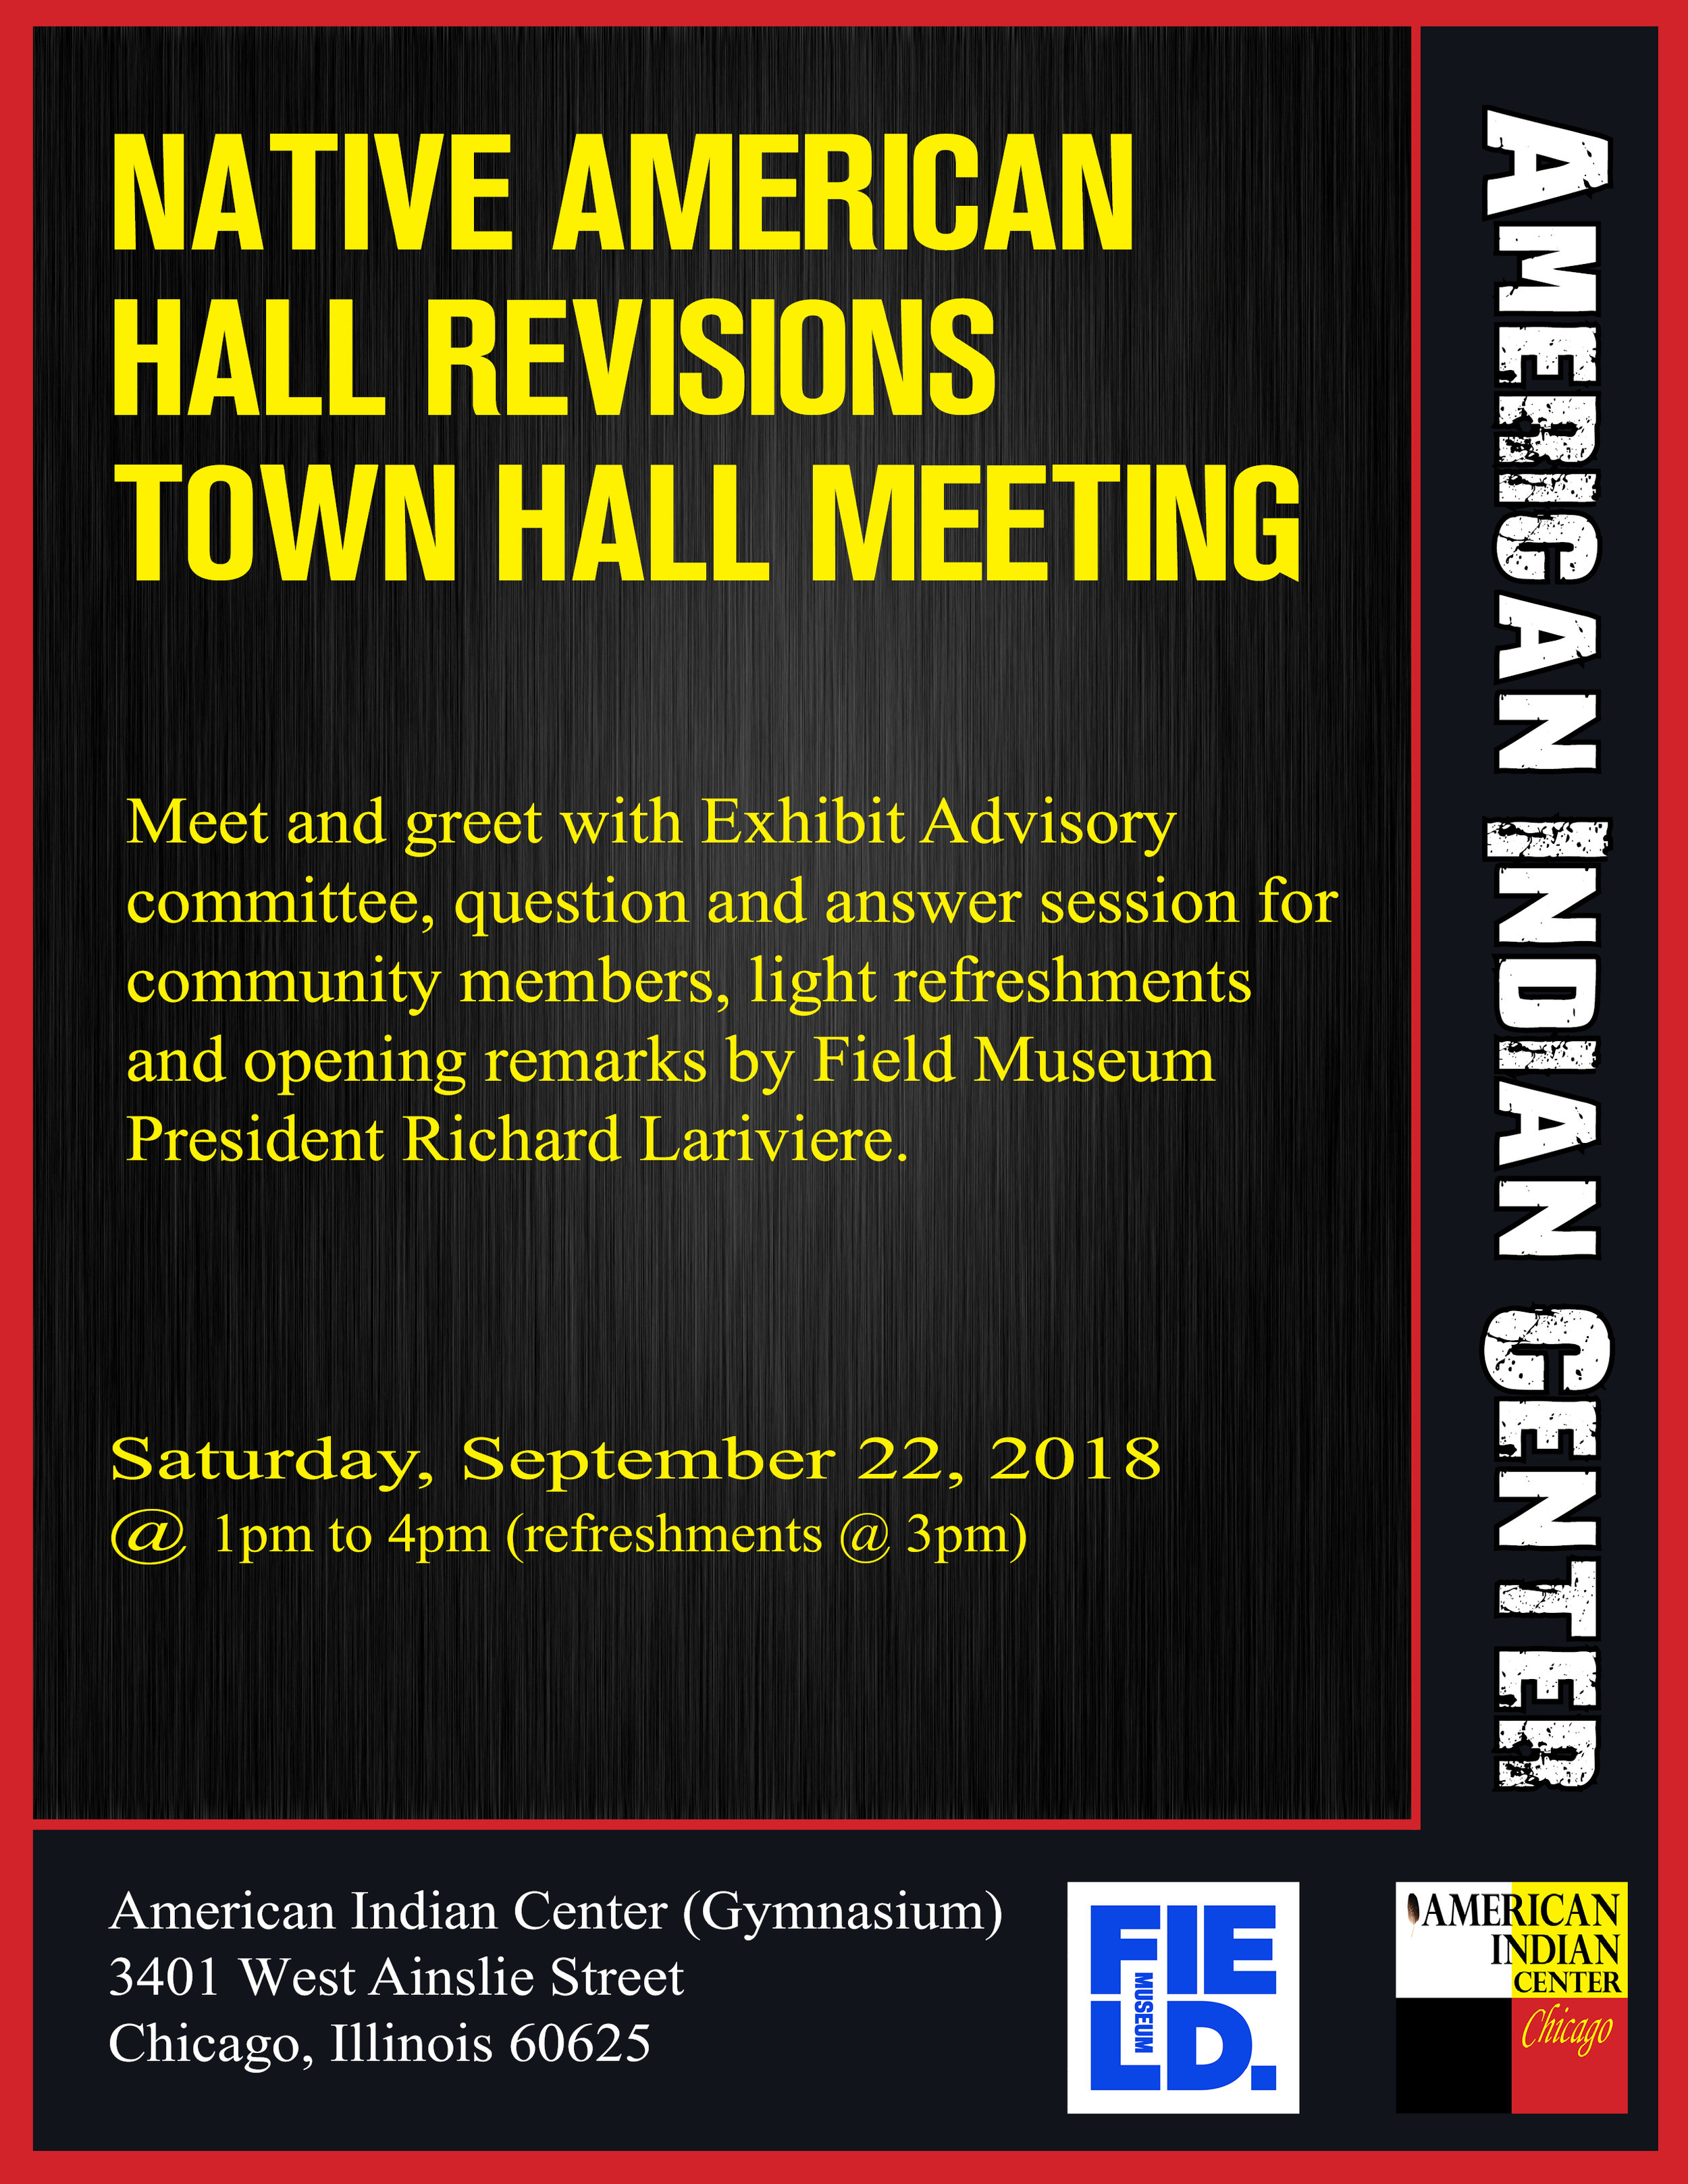 Field Museum_NA Hall Revisions Town Hall Mtg_ Sep 2018.jpg